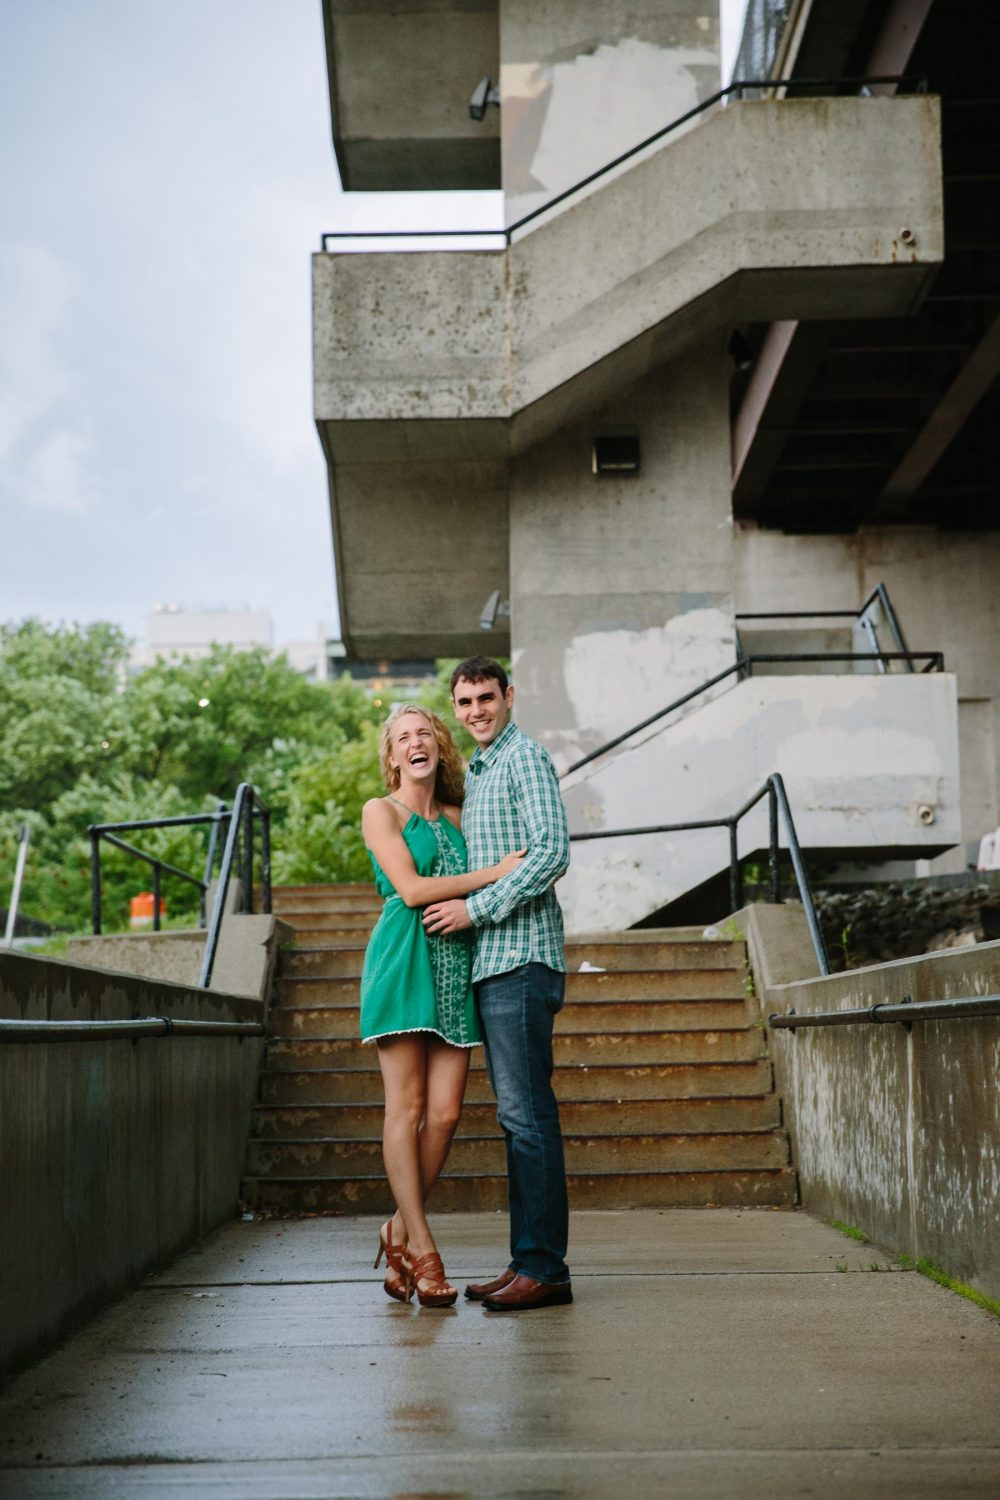 011-summer-manchester-nh-rain-engagement